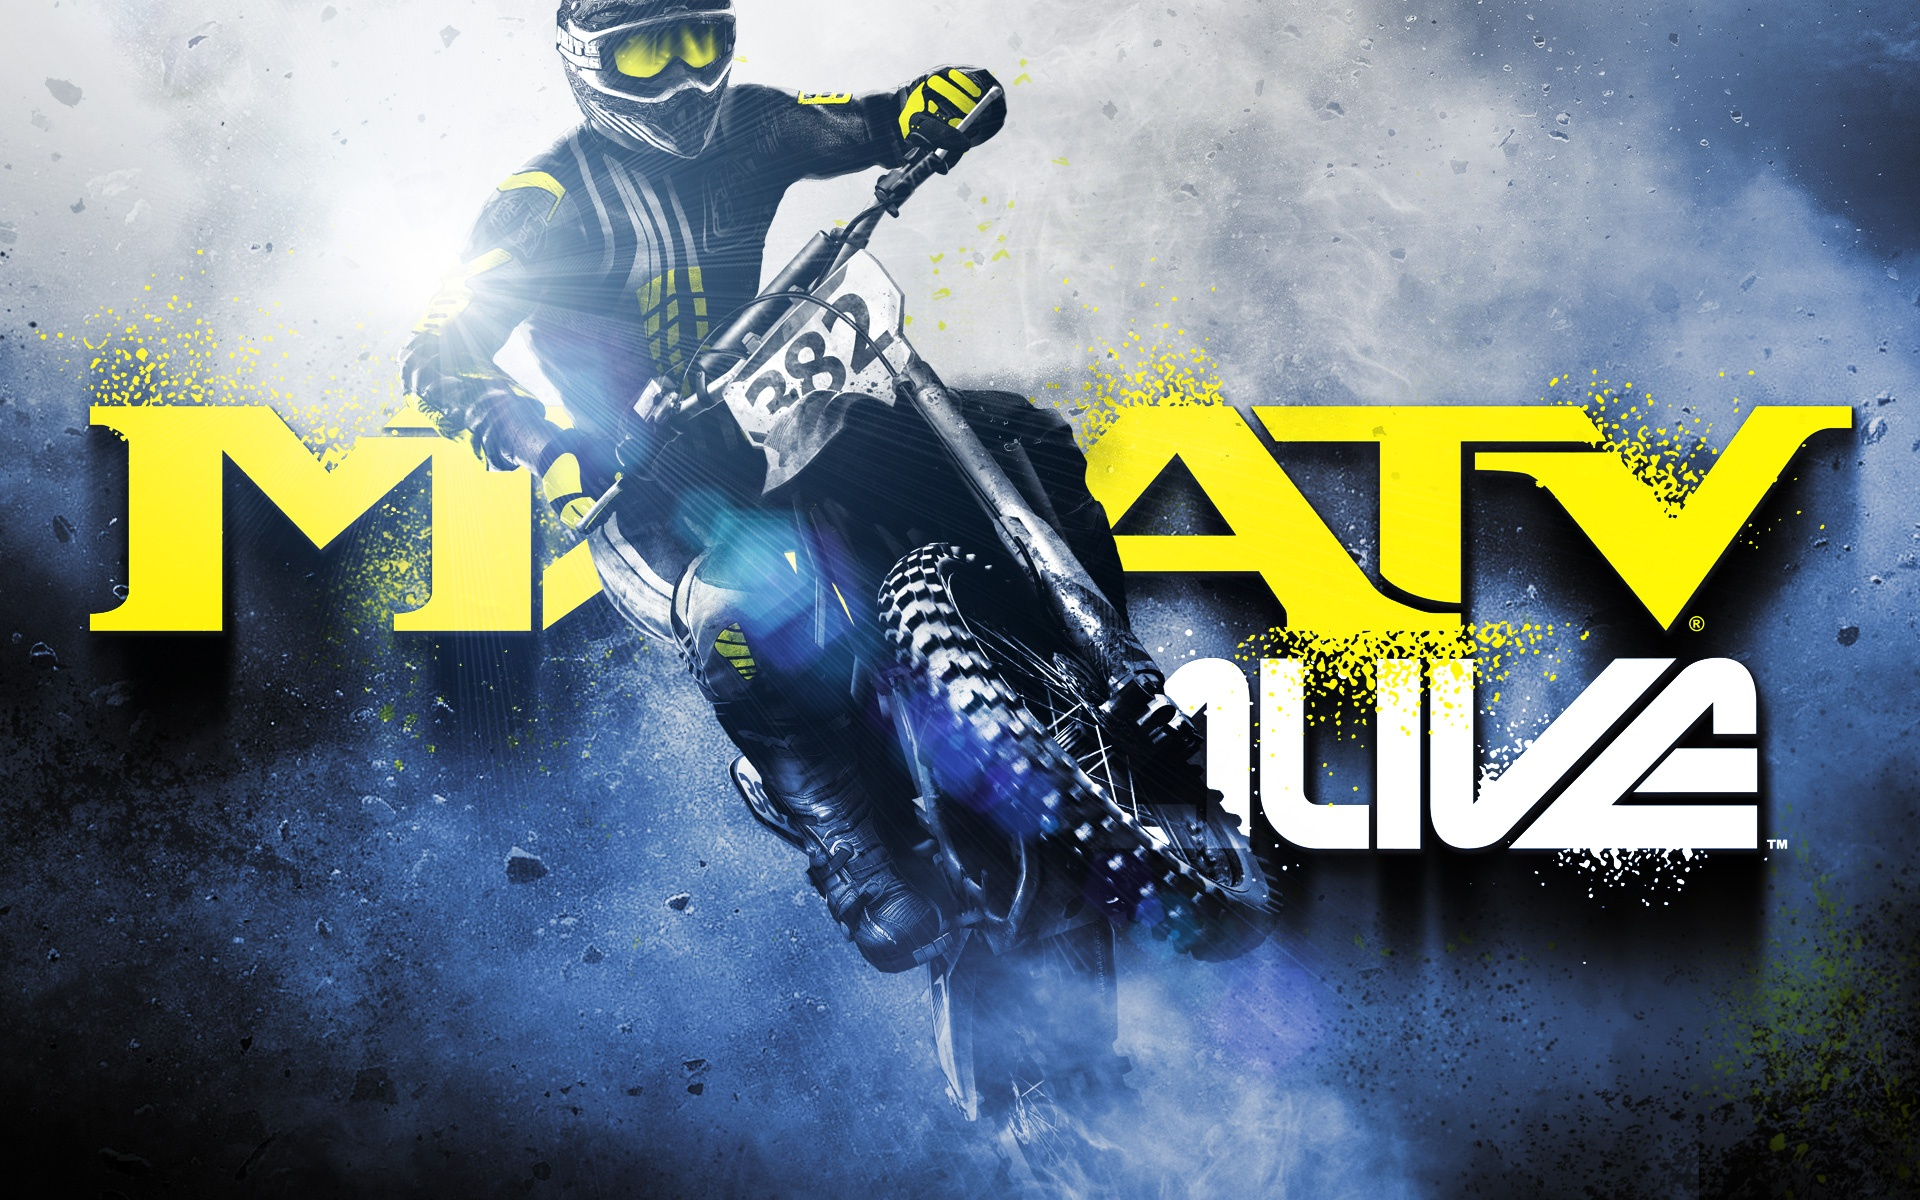 Mx vs atv alive is an off road racing game hd wallpaper background image 1920x1200 id - Games hd wallpapers 1920x1200 ...